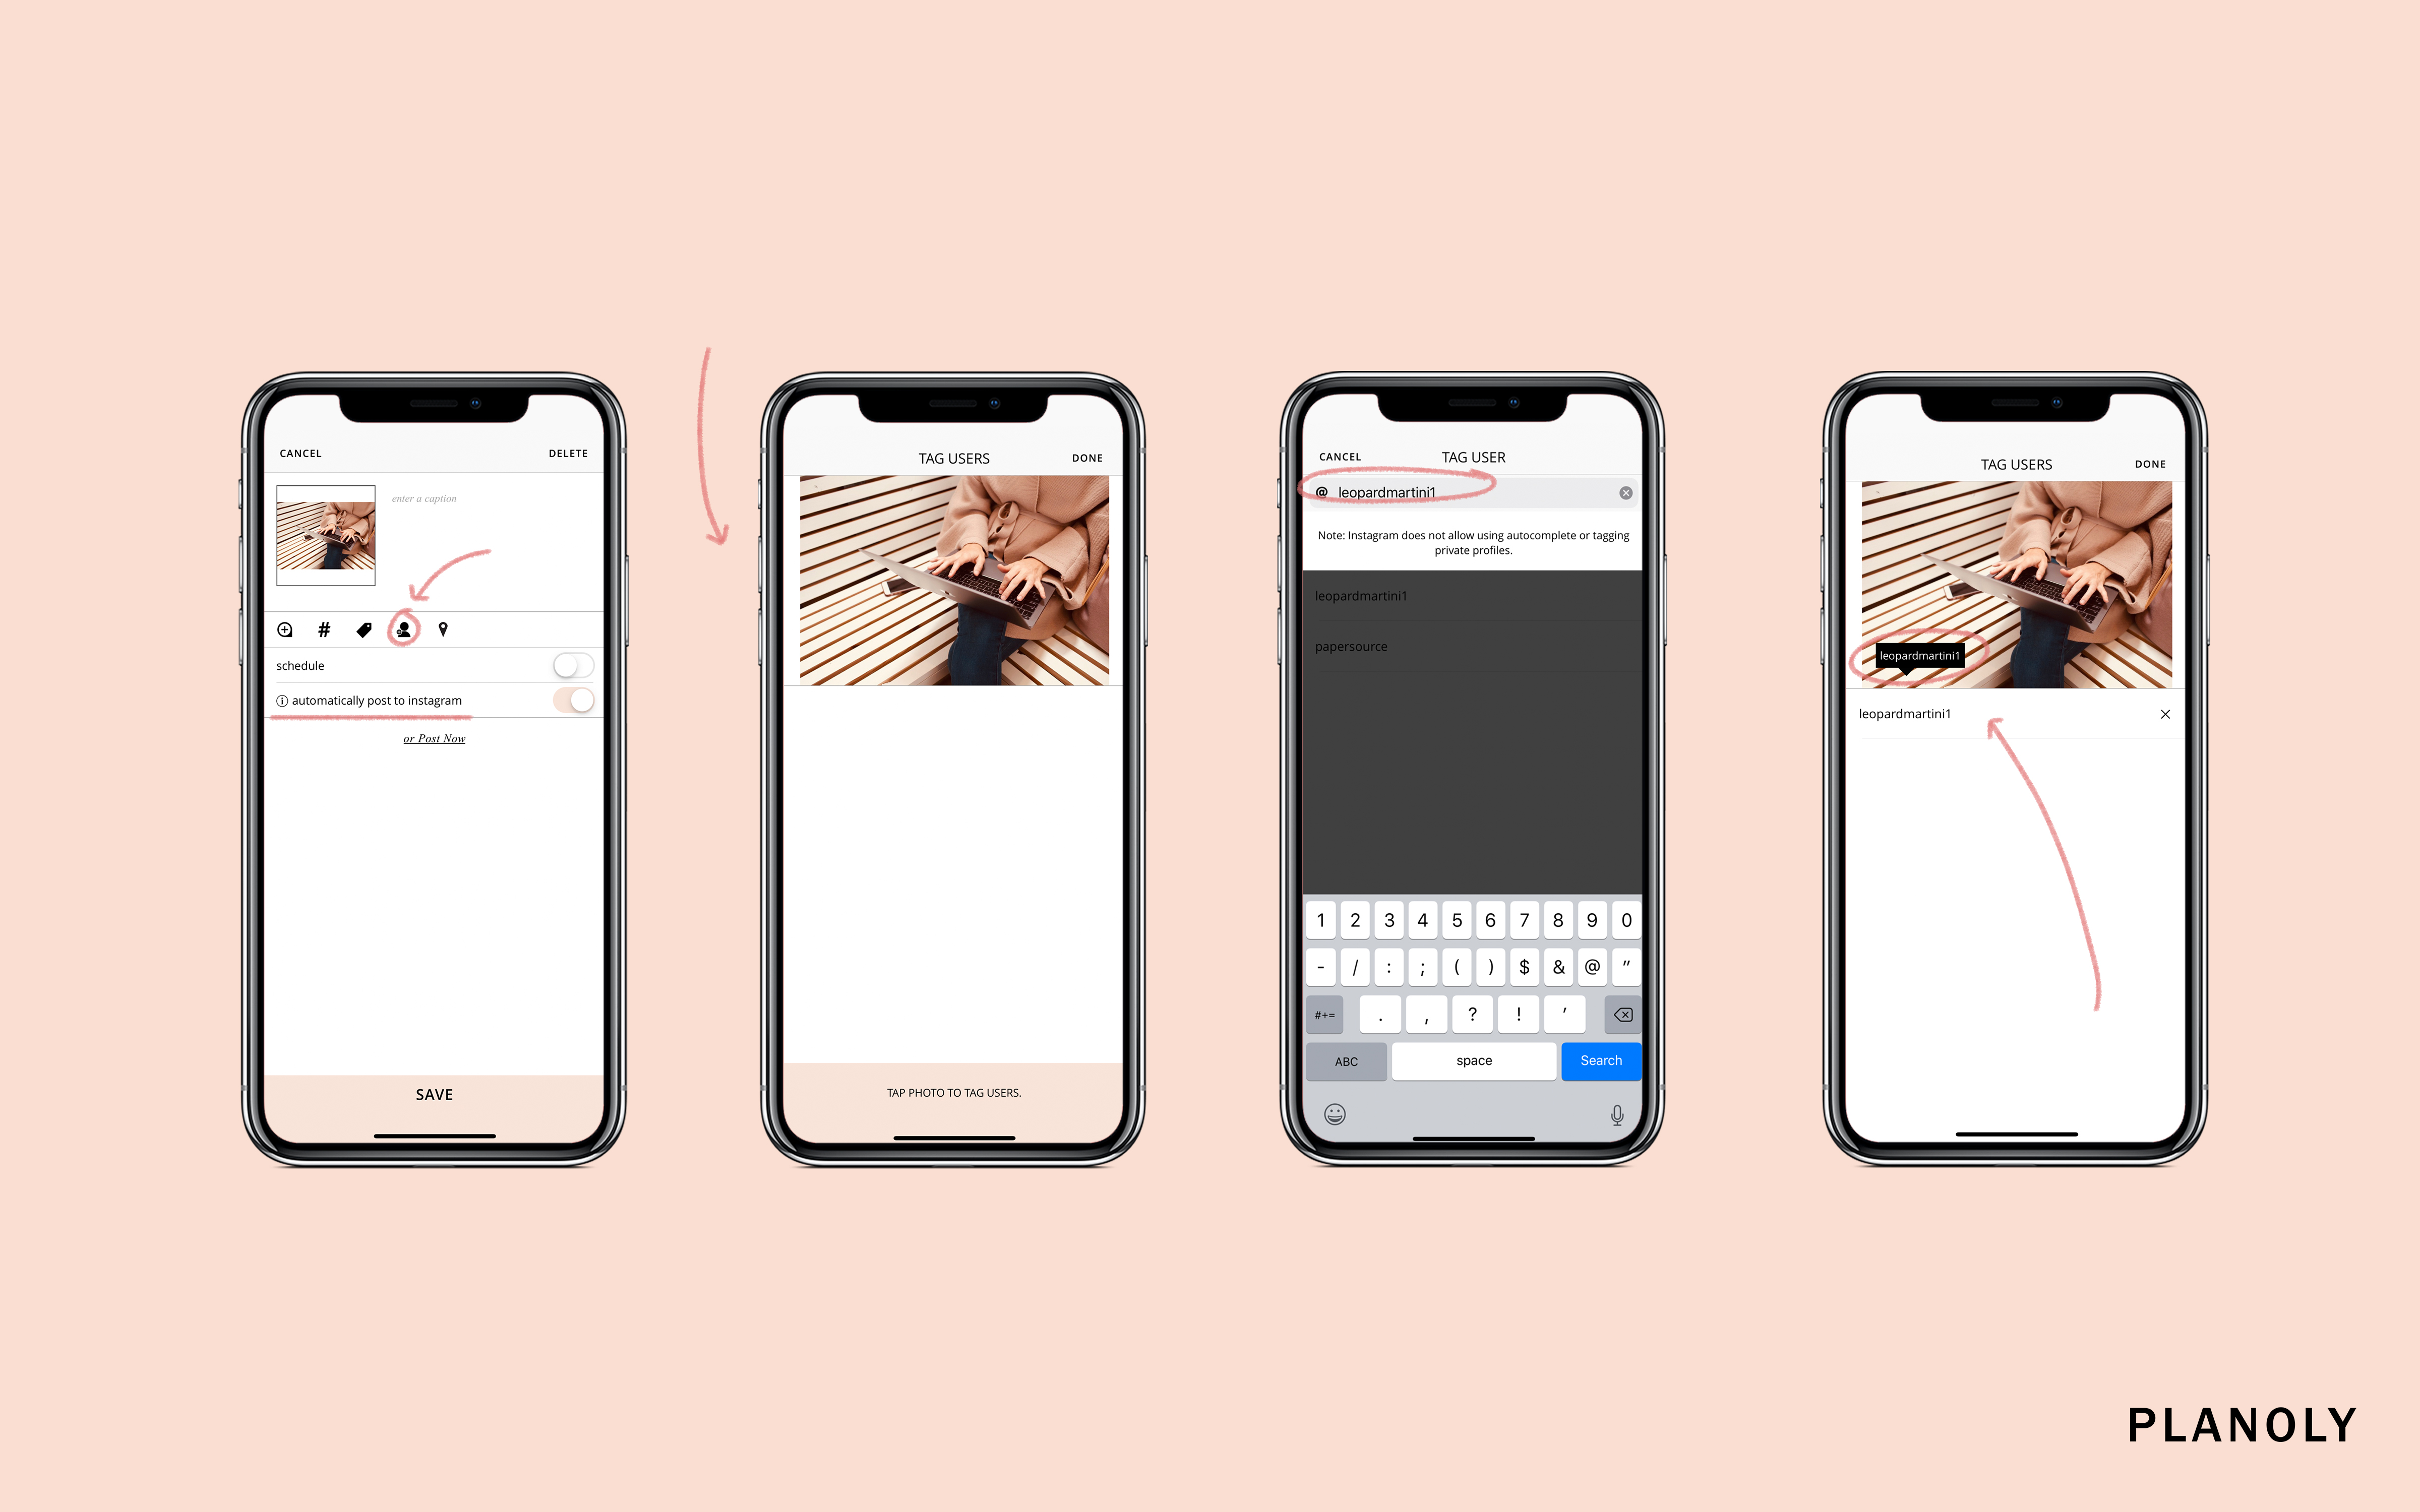 New Feature: User and Location Tagging on PLANOLY